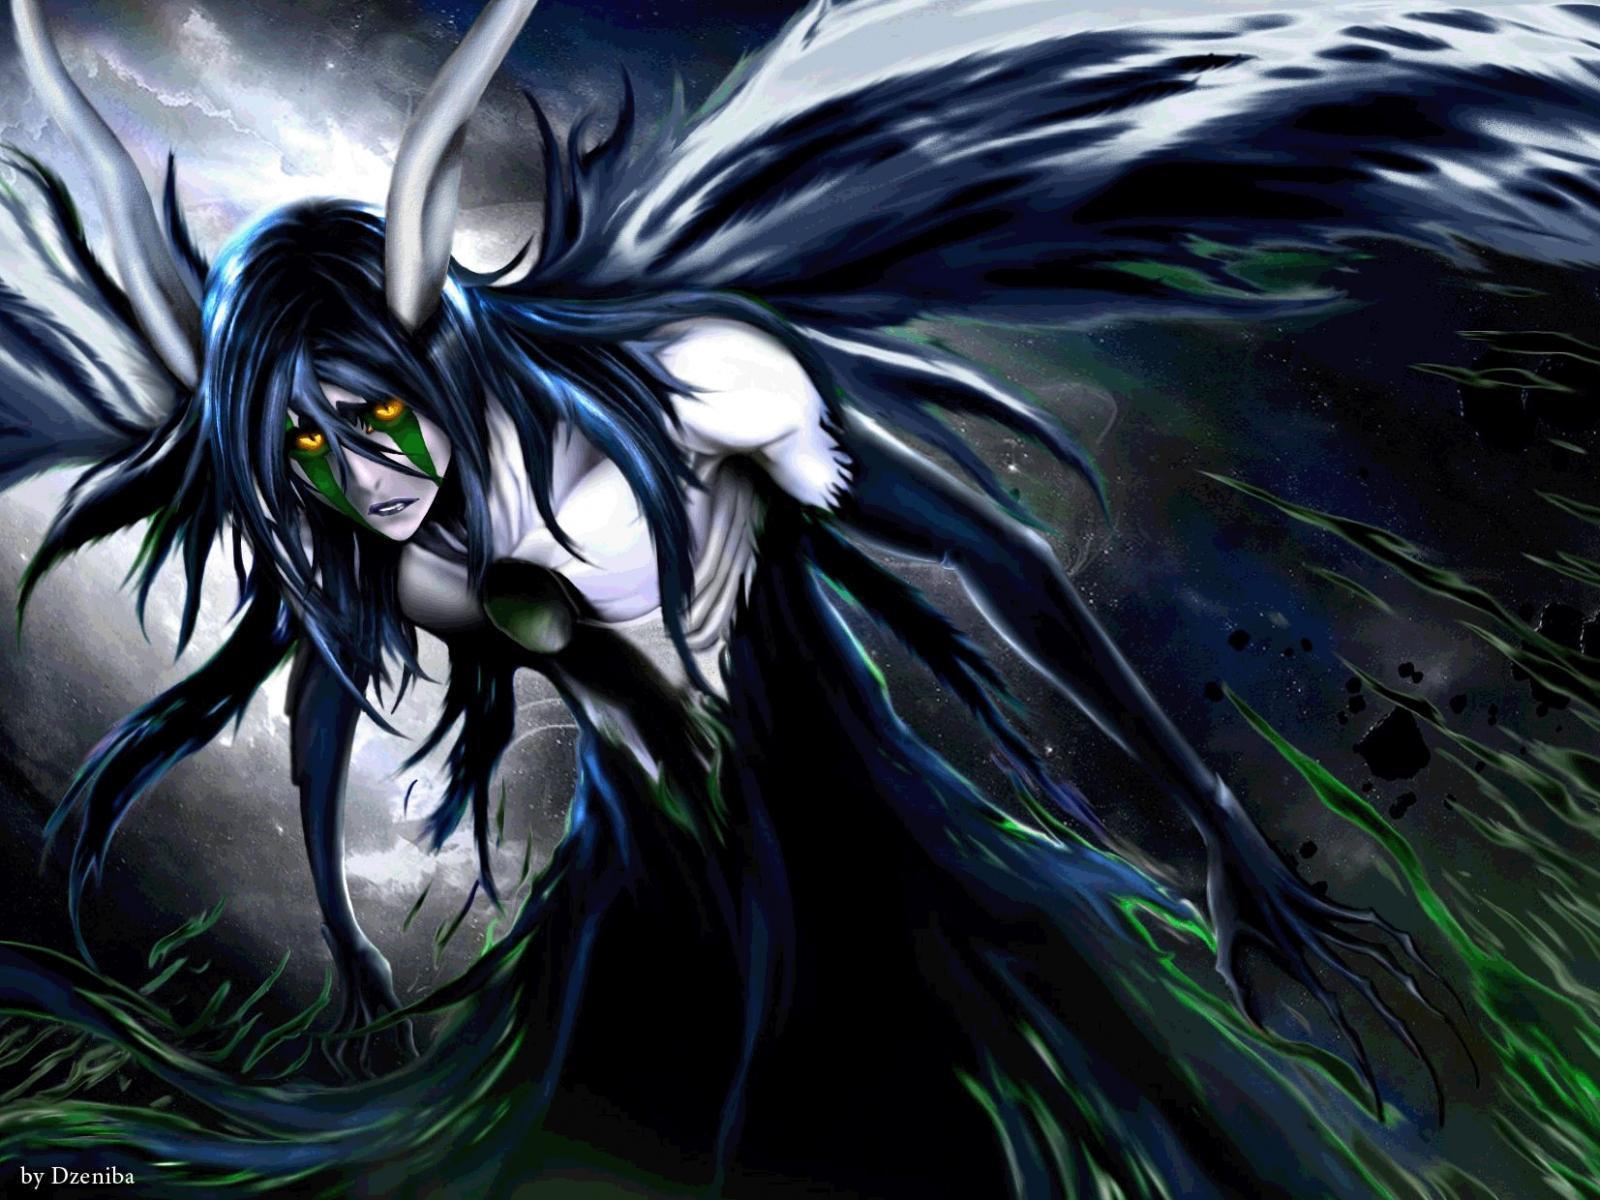 Ulquiorra Cifer 9 Fan Arts and Wallpapers | Your daily Anime Wallpaper and Fan Art